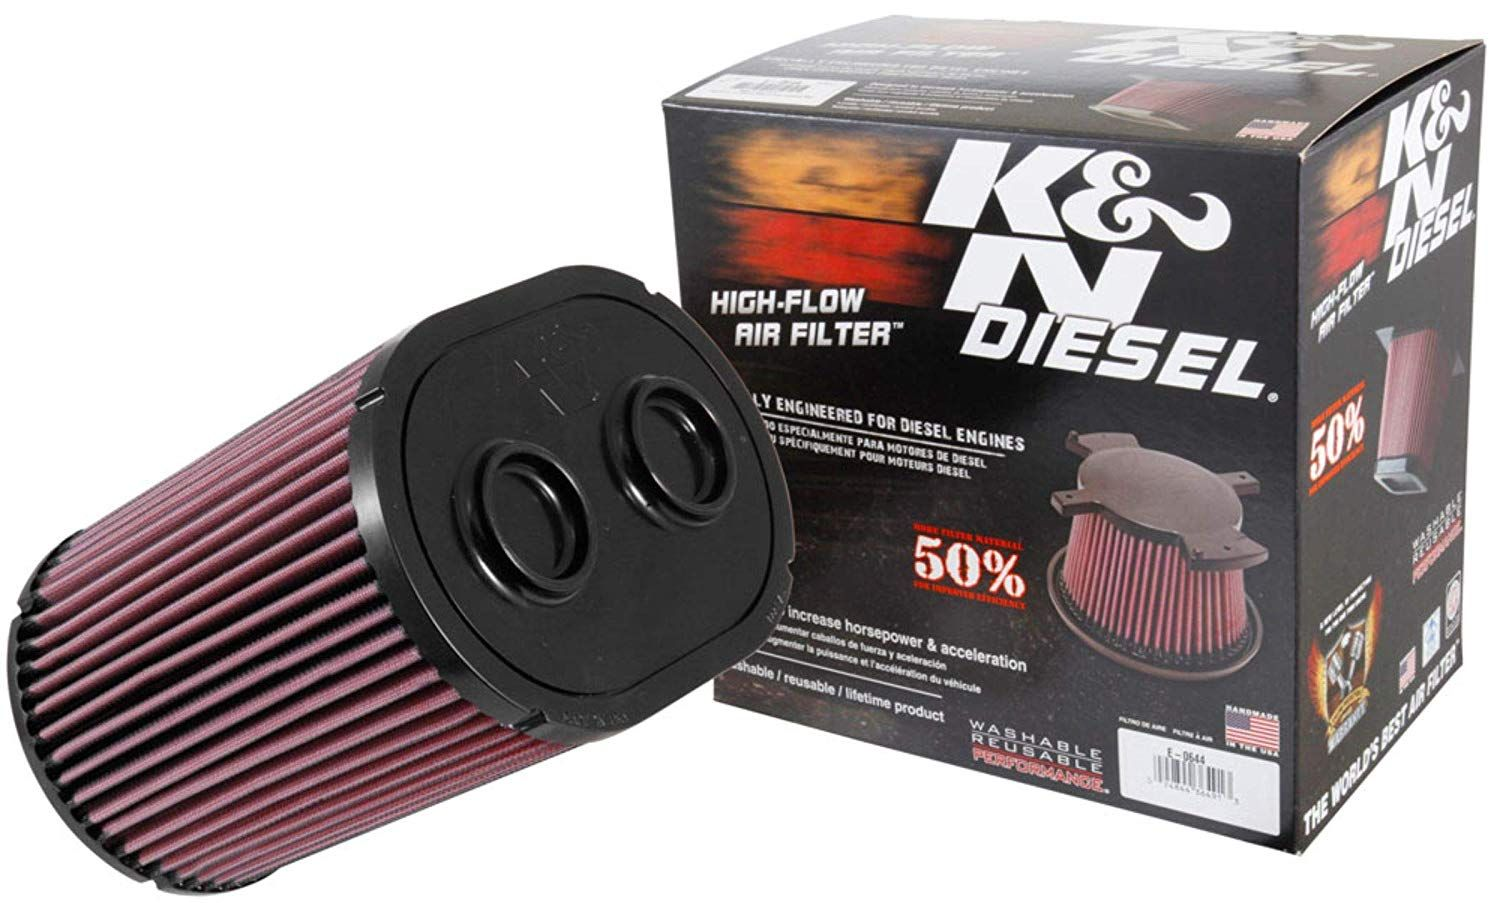 KandN engine air filter, washable and reusable 20172019